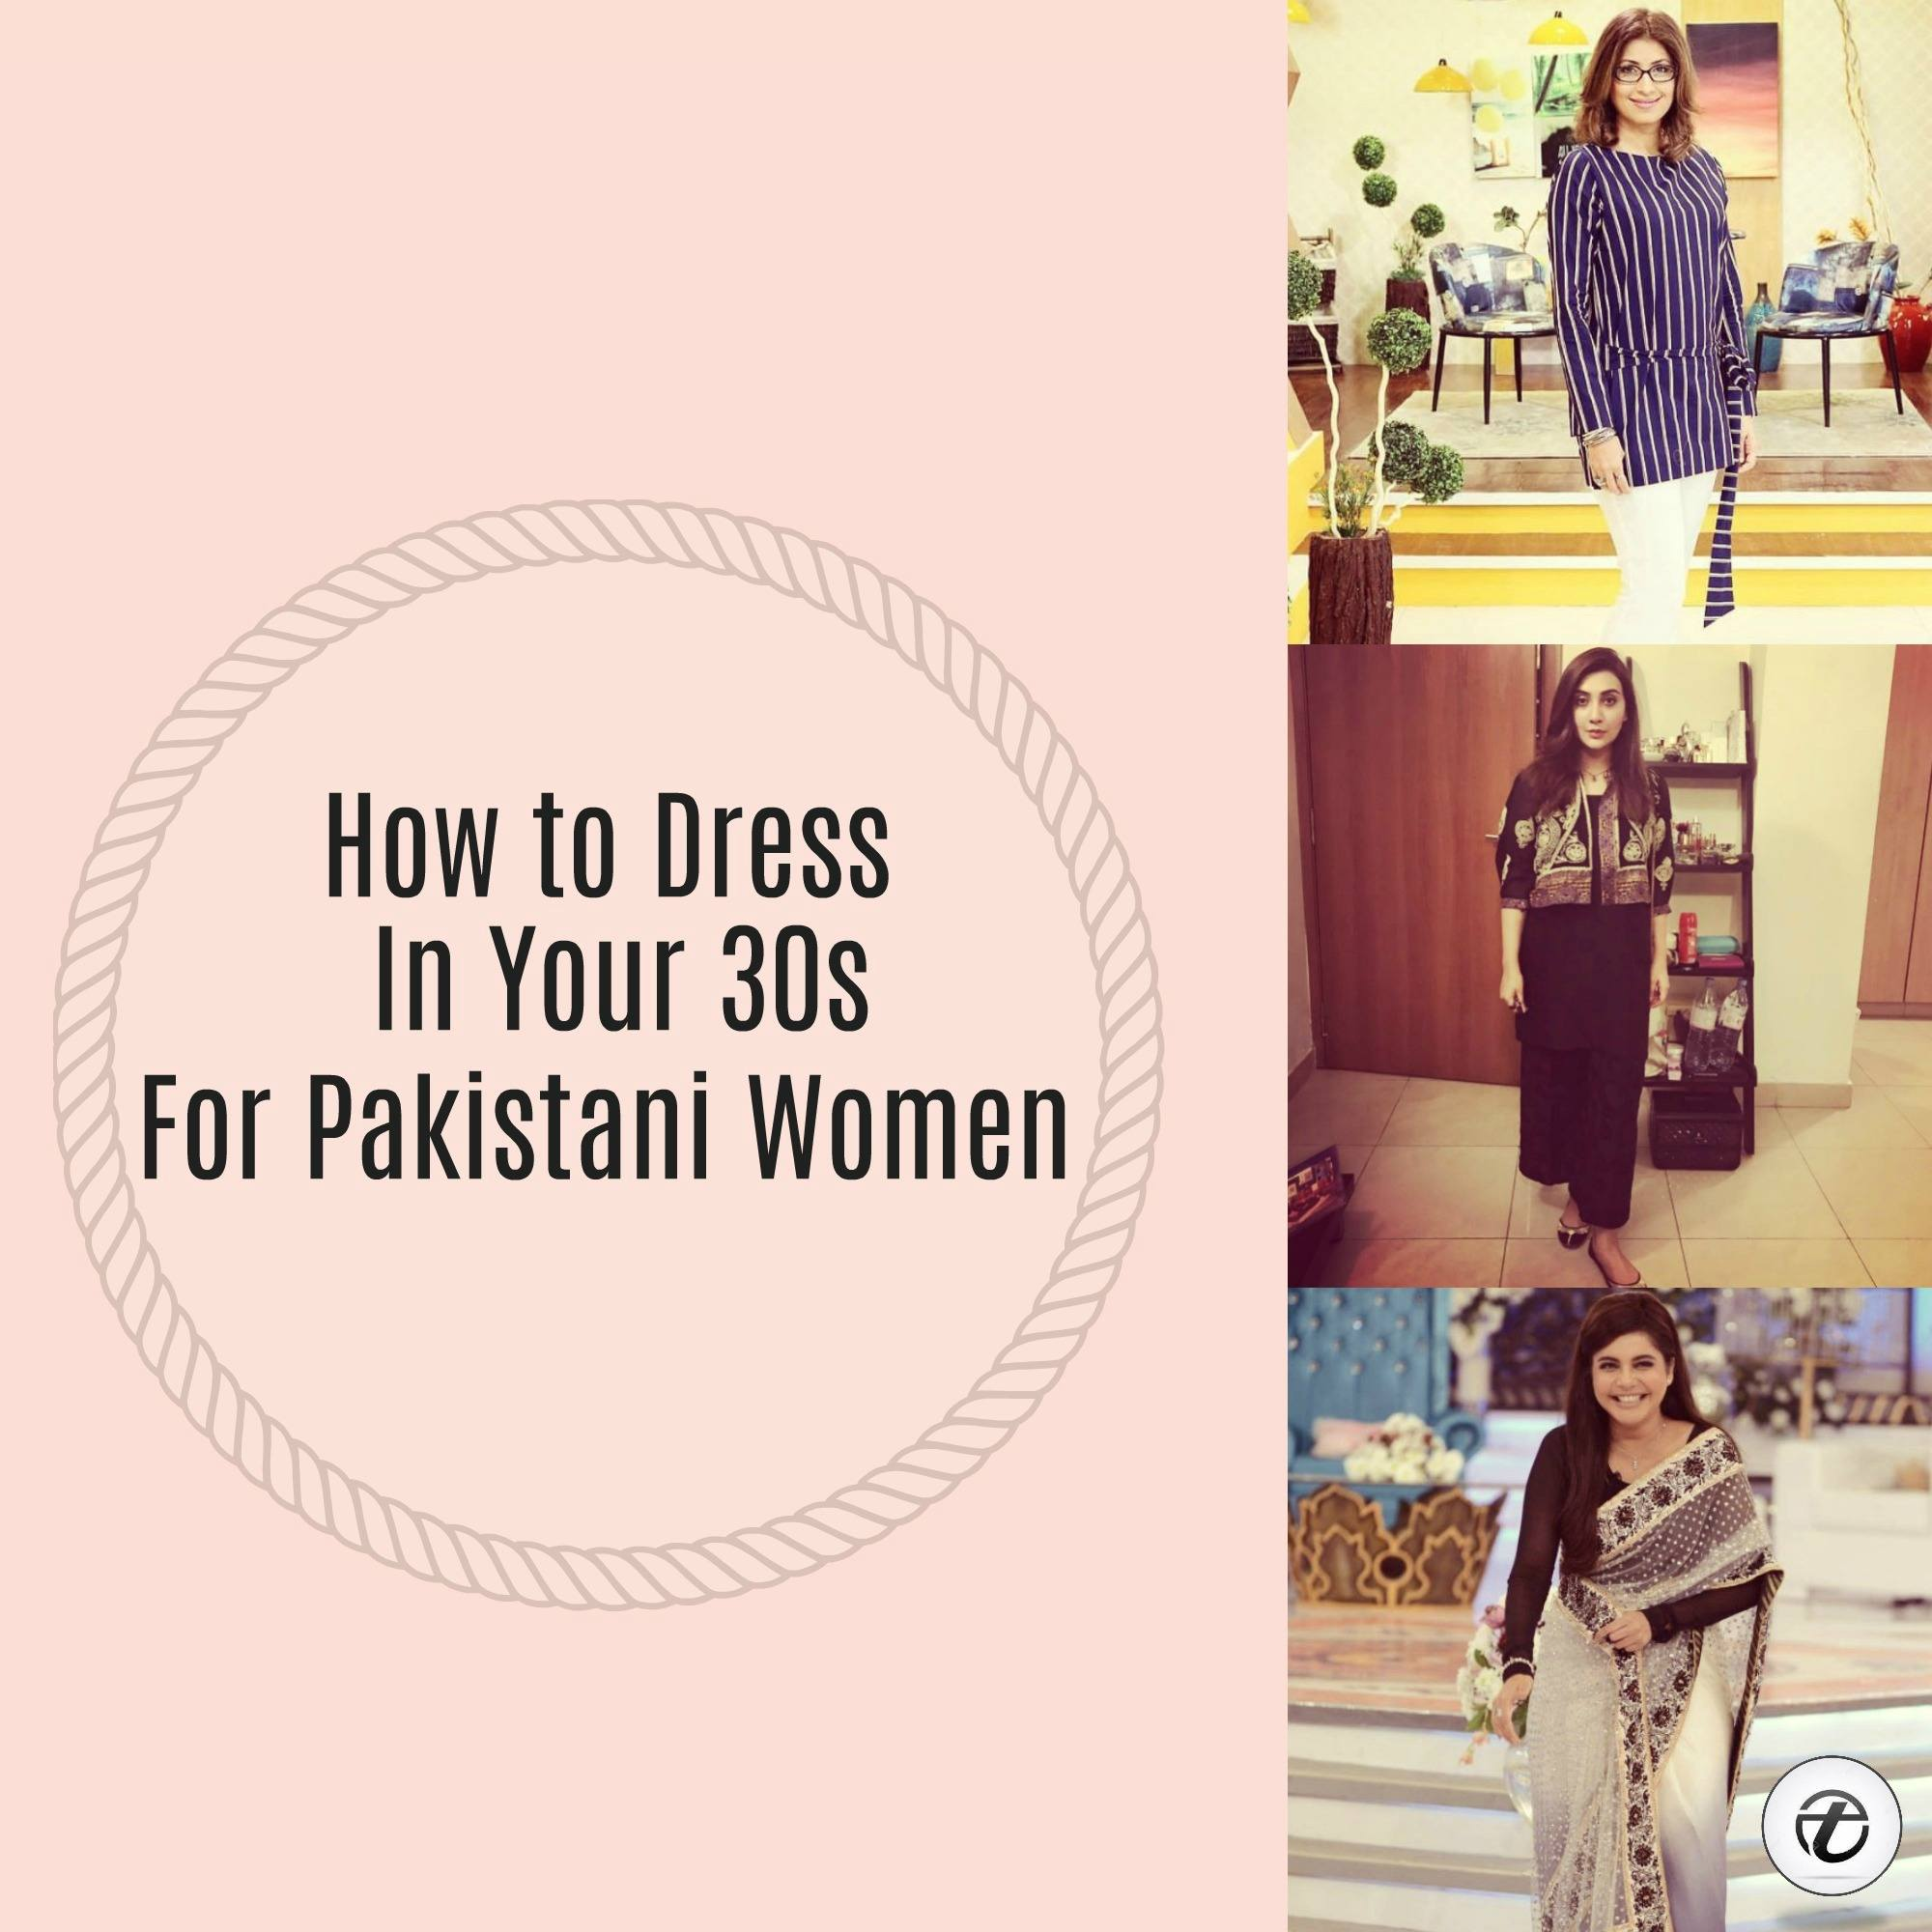 Outfits for Pakistani Women Over 30